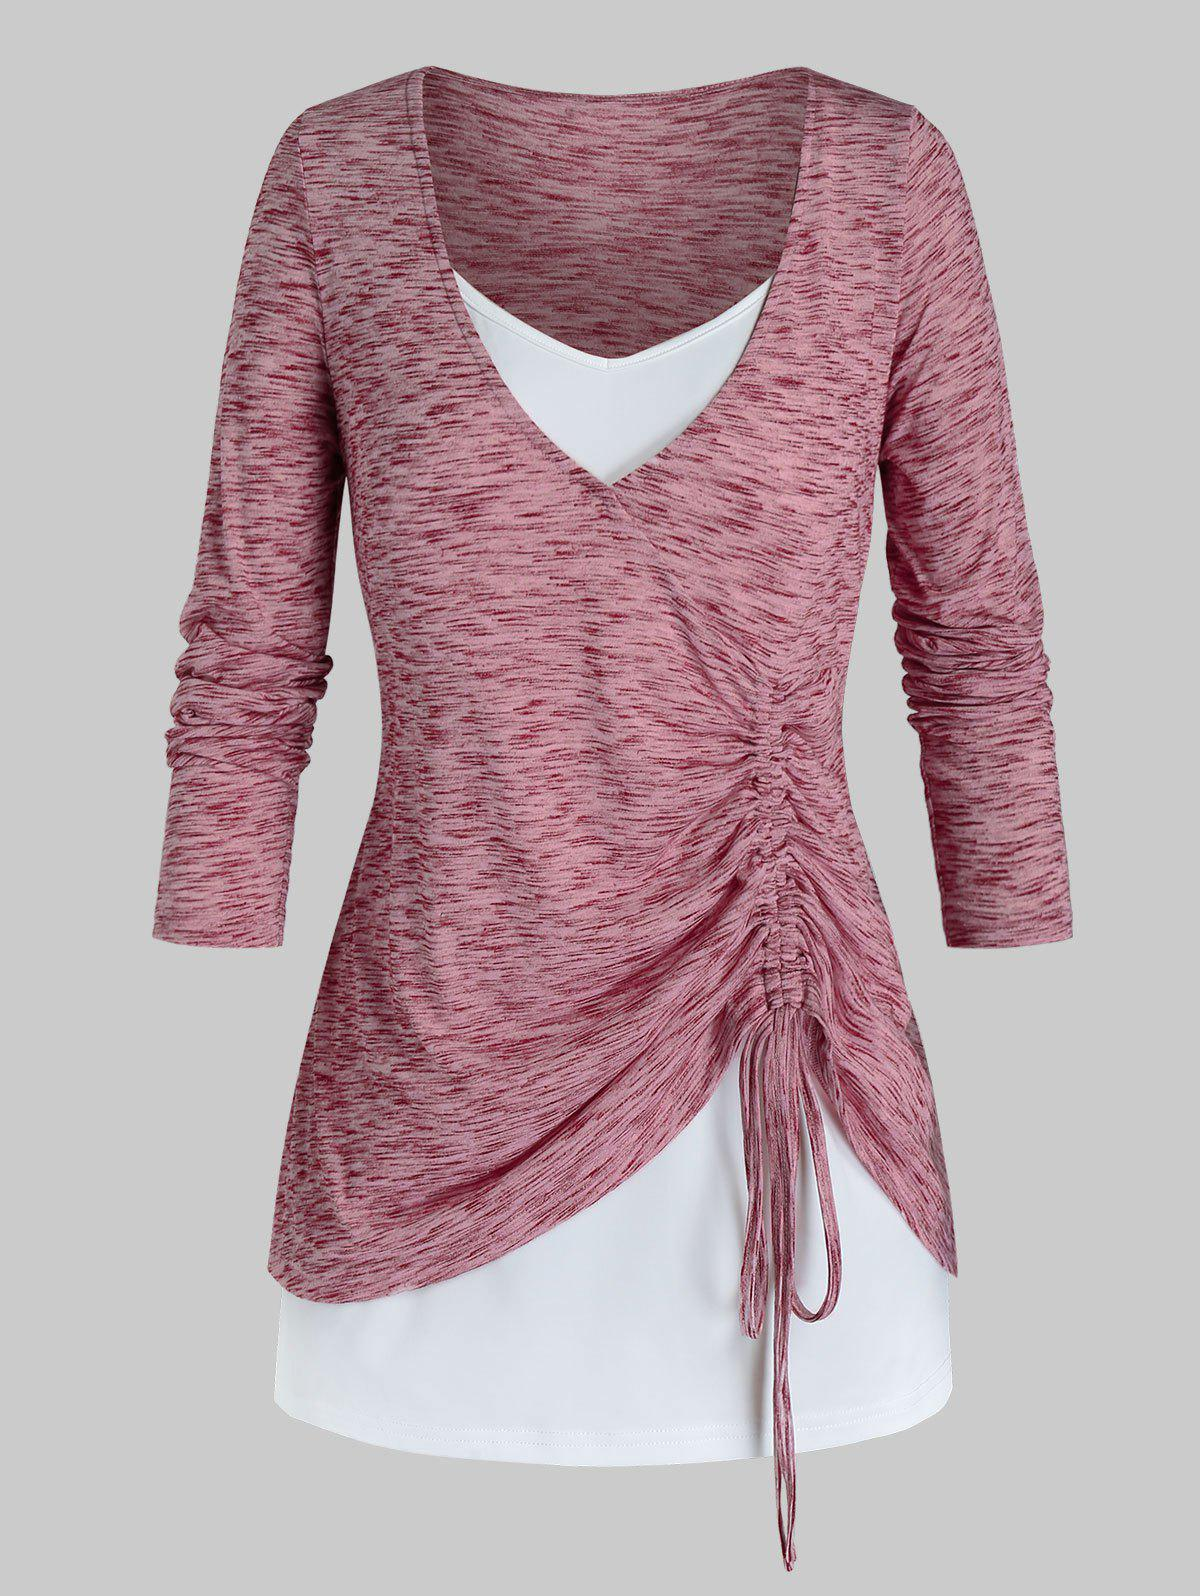 Plus Size Space Dye Cinched T-shirt and Cami Top Set - LIGHT PINK 5X